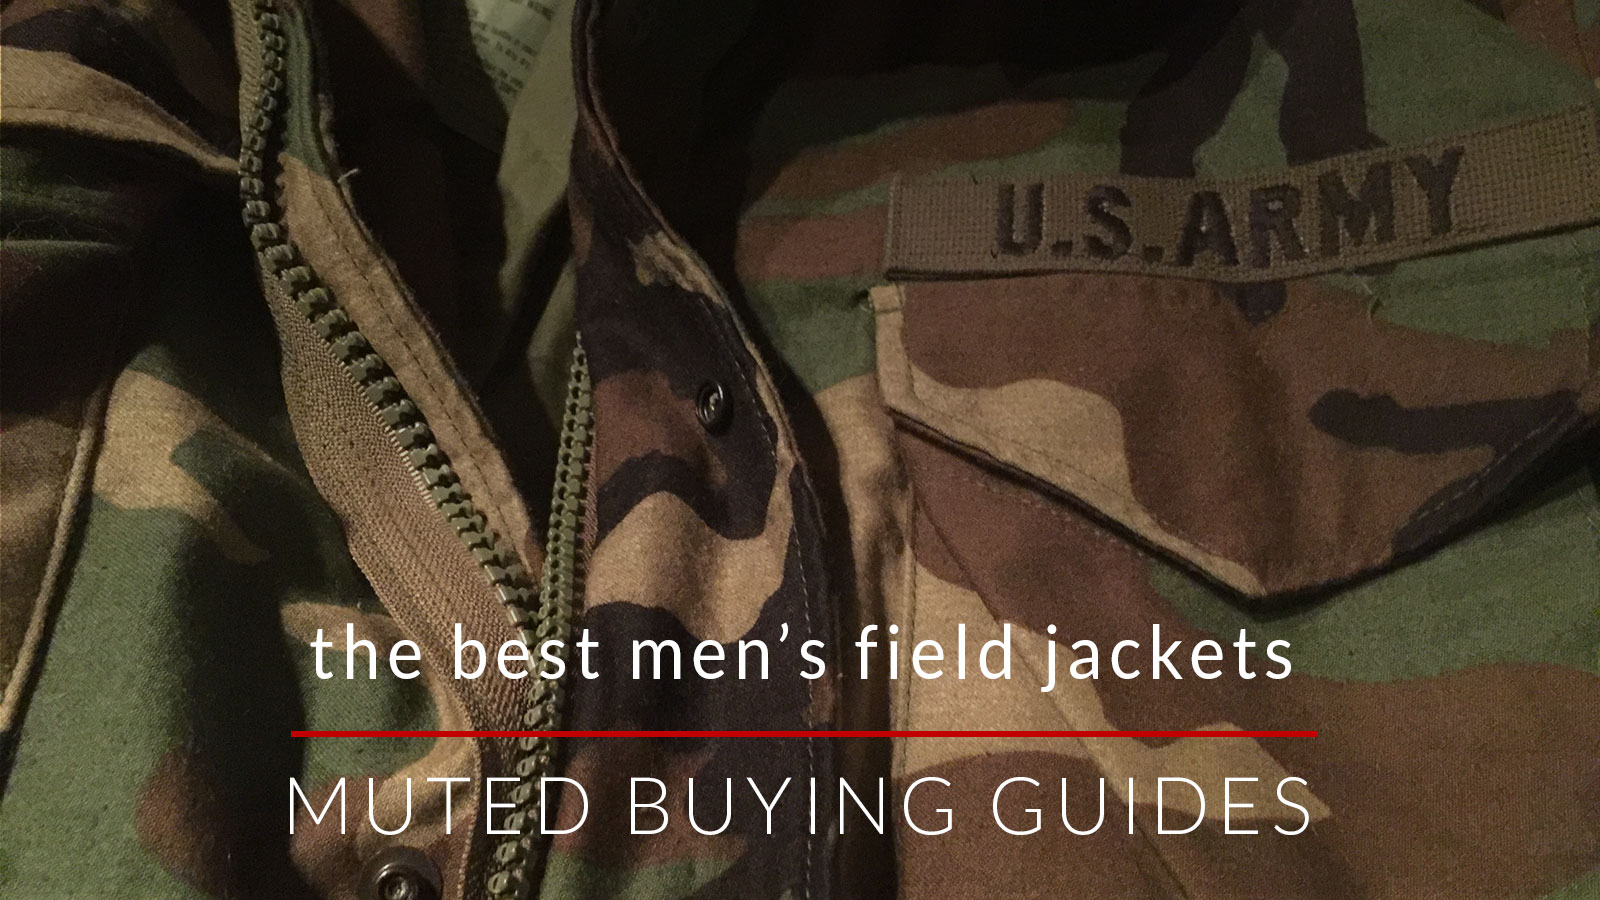 the best men's field jacket